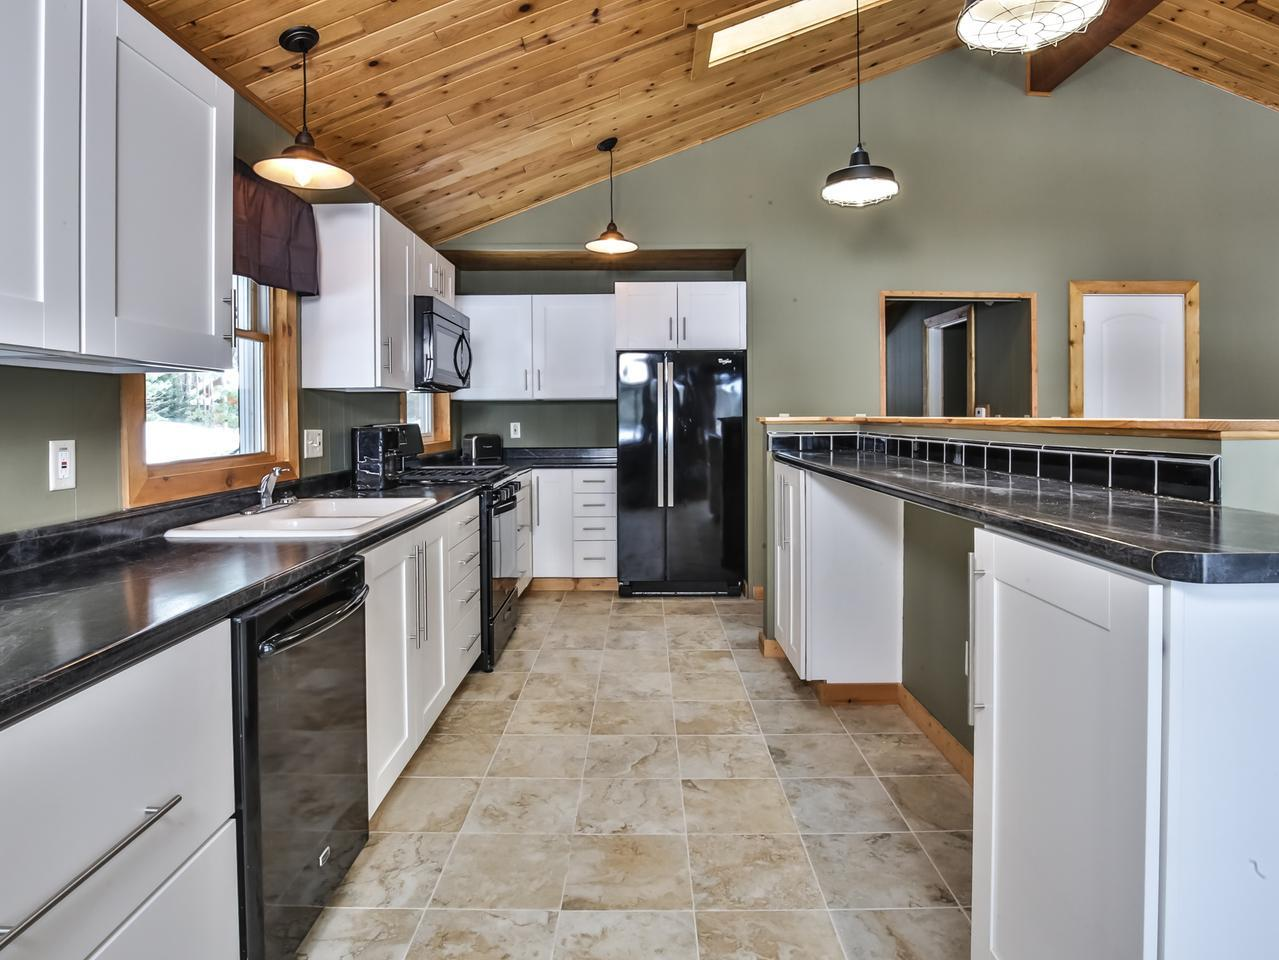 Tremendous rental opportunity on the Eagle River Chain of 28 lakes. This 5 bedroom 2 bath home offers the features you want! There are views of the lake from every angle of the deck and plenty of yard to throw a ball or set up bags. The house is very clean, functional and open. There was plenty of room to spread out. There were endless lakes to choose from whether you wanted to fish or water ski; even a great sandbar nearby. Everything in the home is new, appliances, floors, paint, you name it. The slope to the lake is gentle and the frontage is very nice and offers very good swimming. The pier is large and new and there is a 2 car detached garage. All the conveniences of Eagle River are less than 5 minutes away. Imagine the Chain lifestyle or use the home as a rental!!